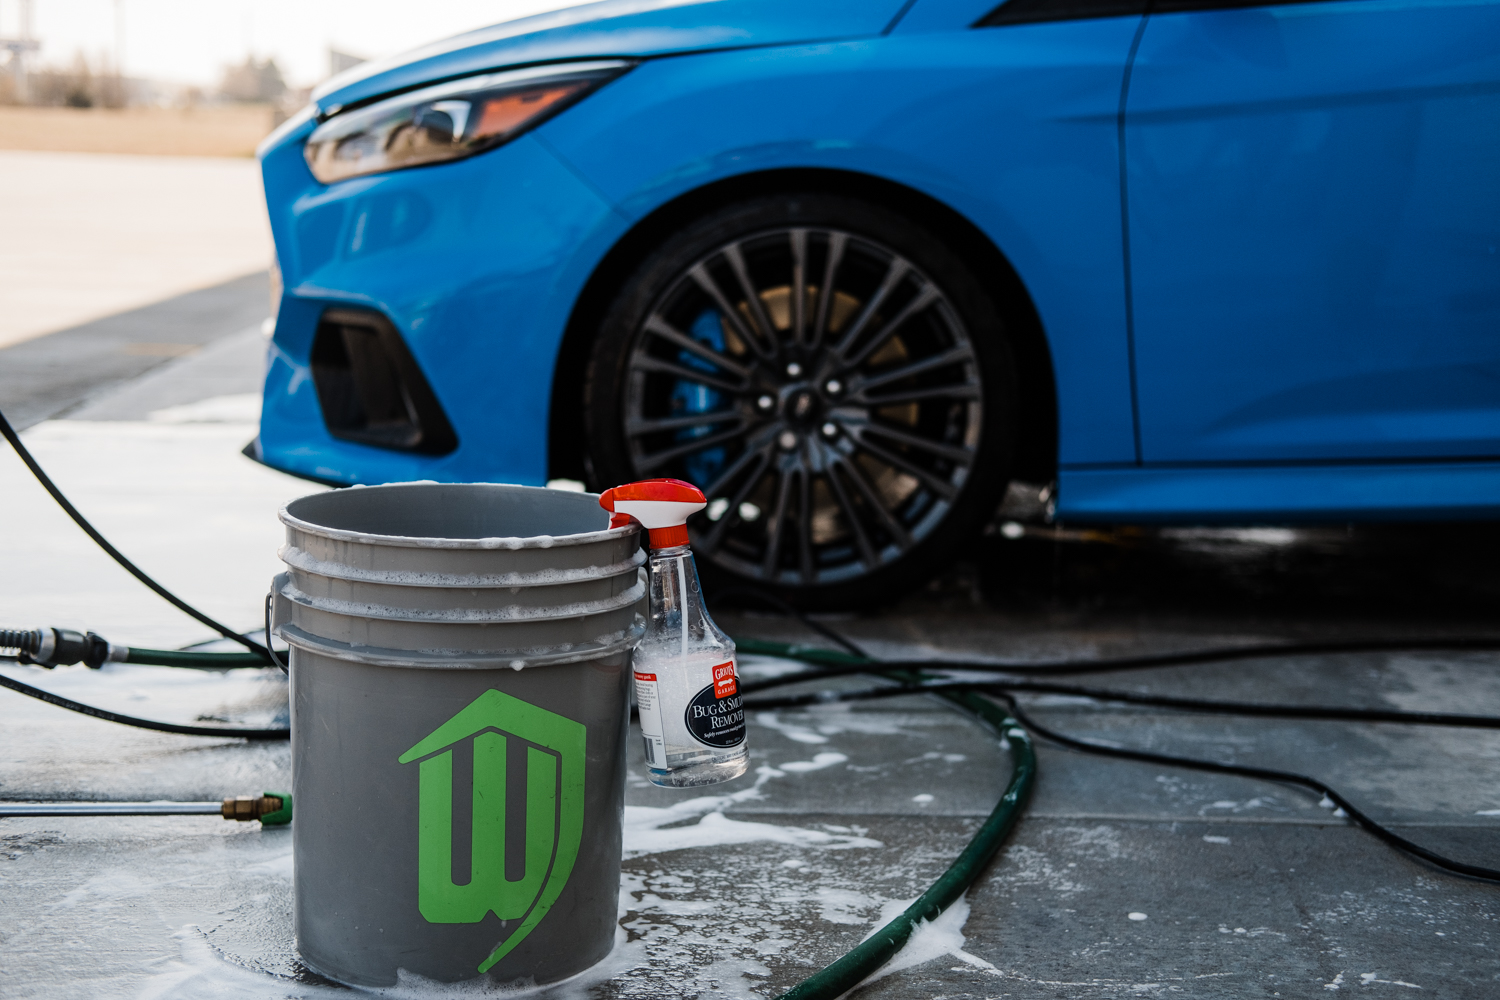 Ford Focus RS-XPEL Ultimate Paint Protection Film-Car Wash-Car Detailing-Paint Protection Film-Clear Bra-Ford Performance-102.jpg